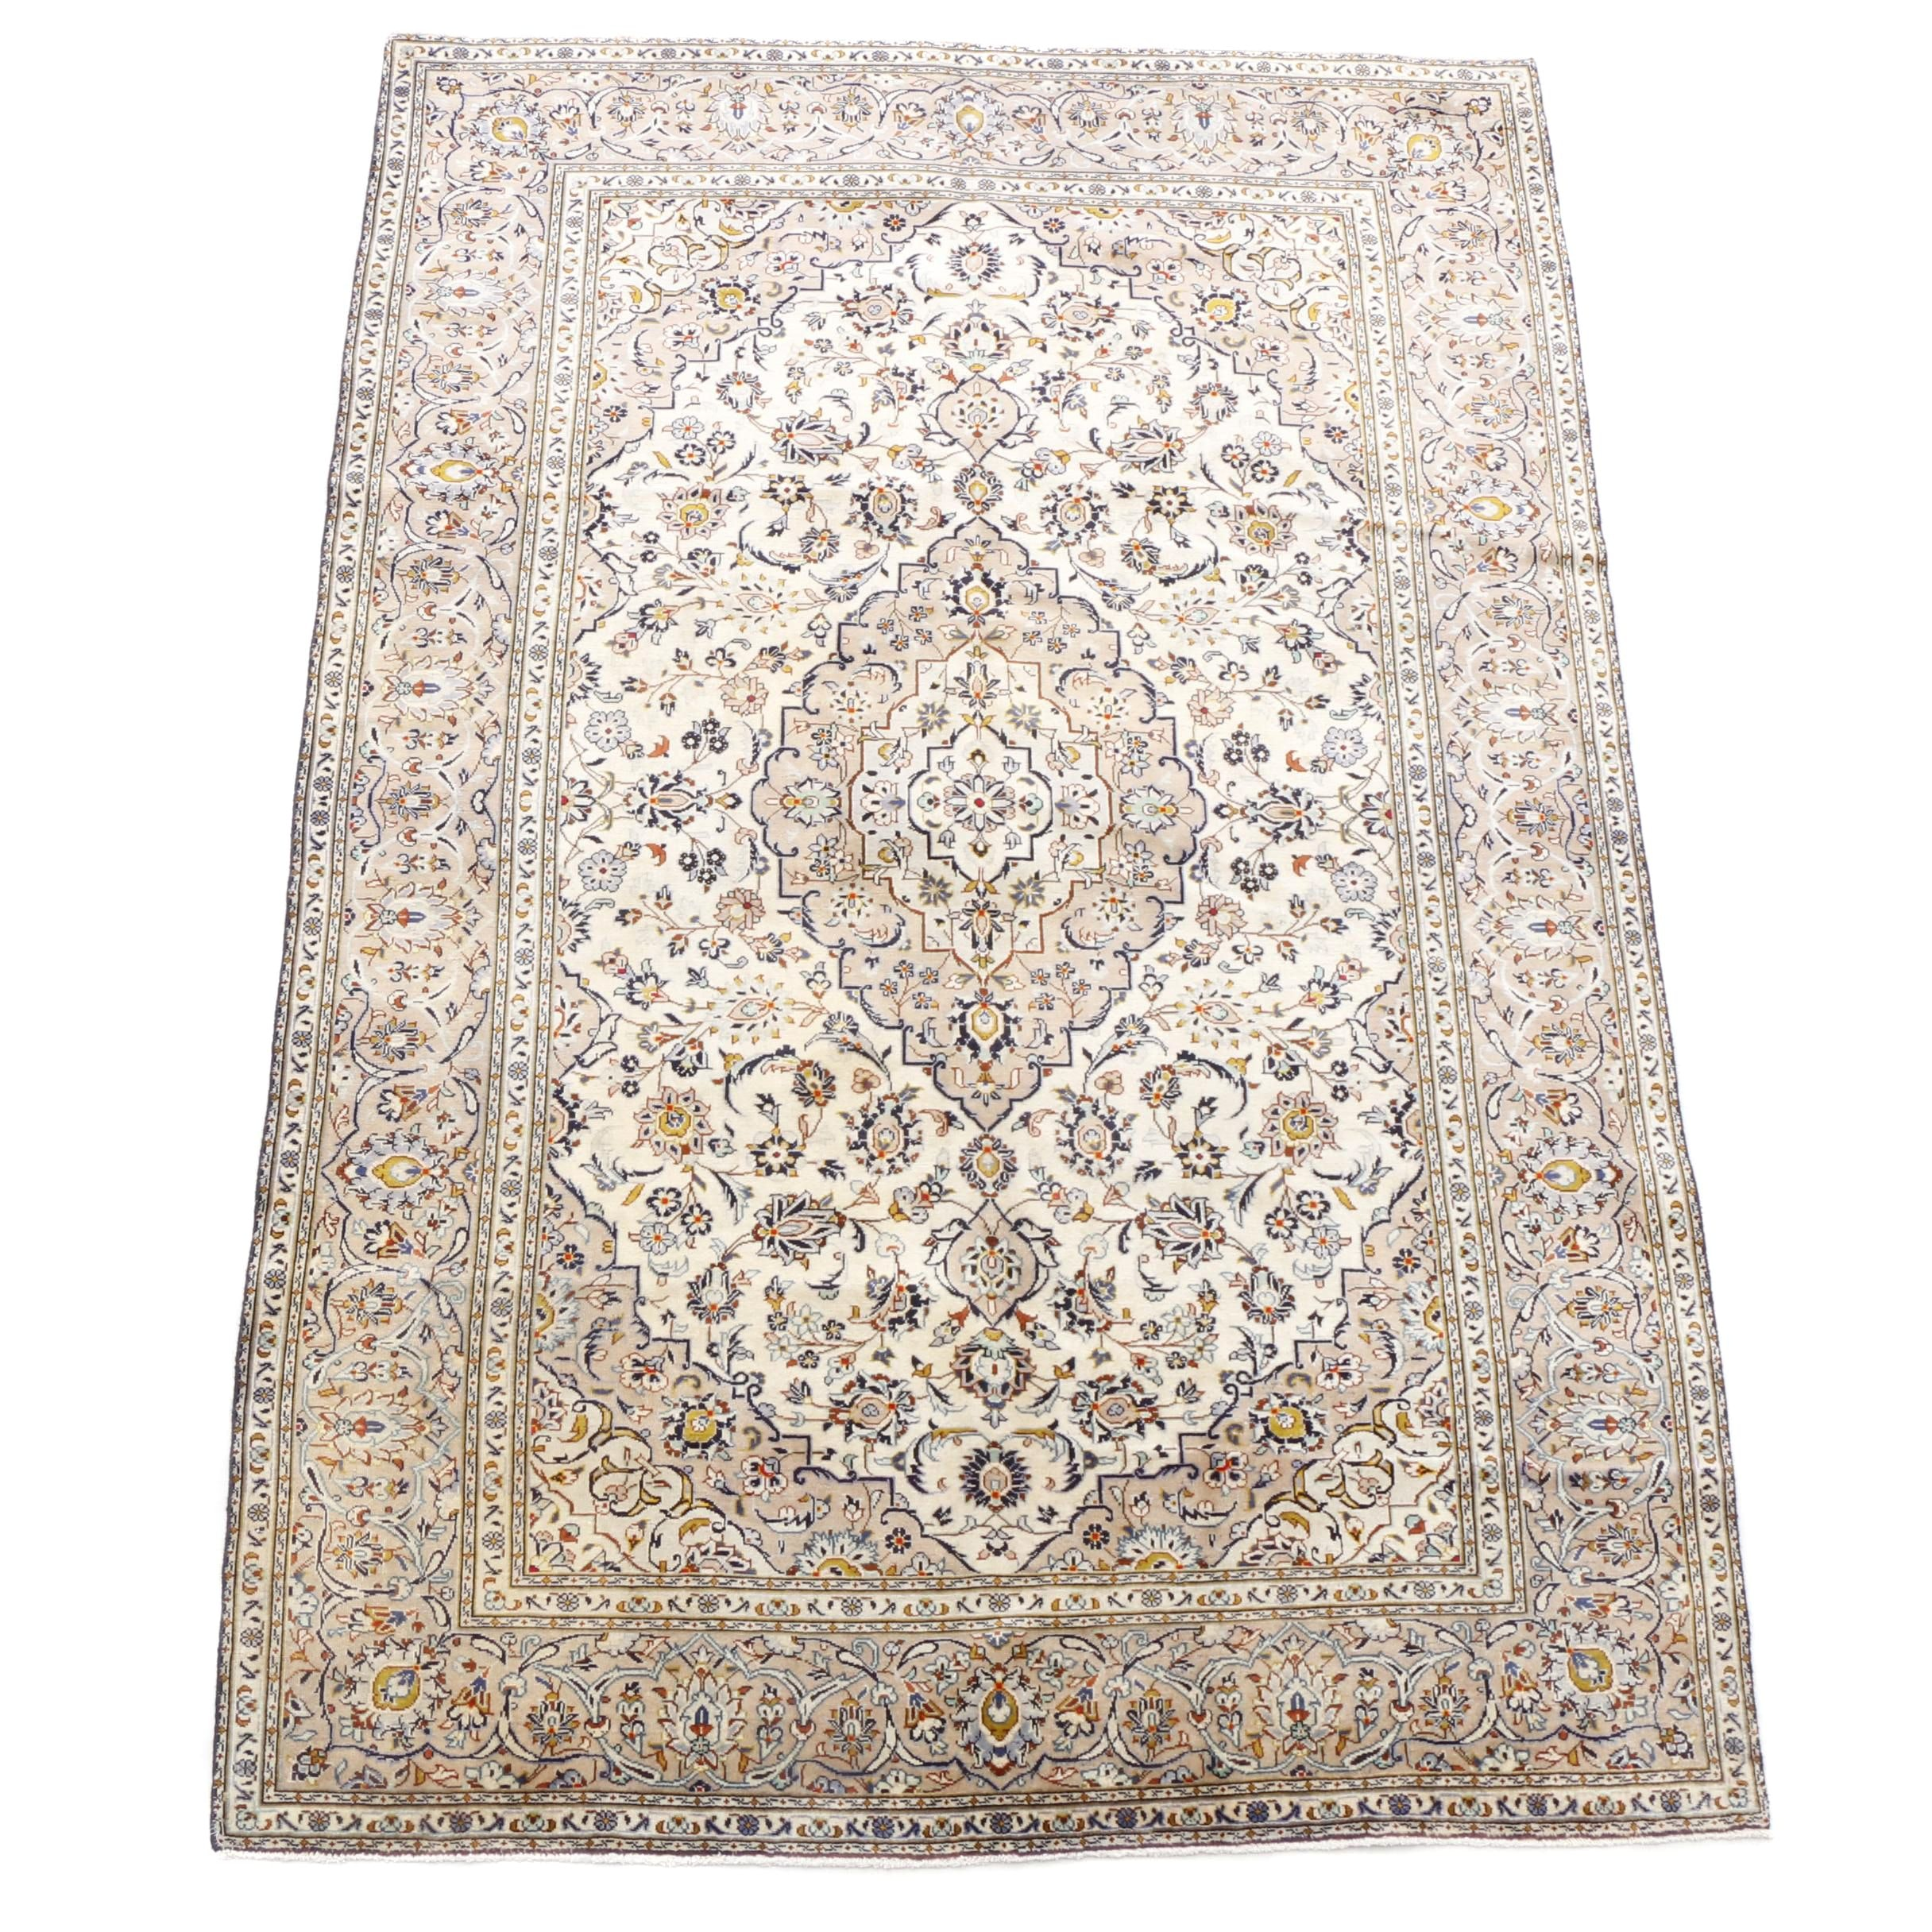 Hand-Knotted Indo-Persian Kashan Wool Rug